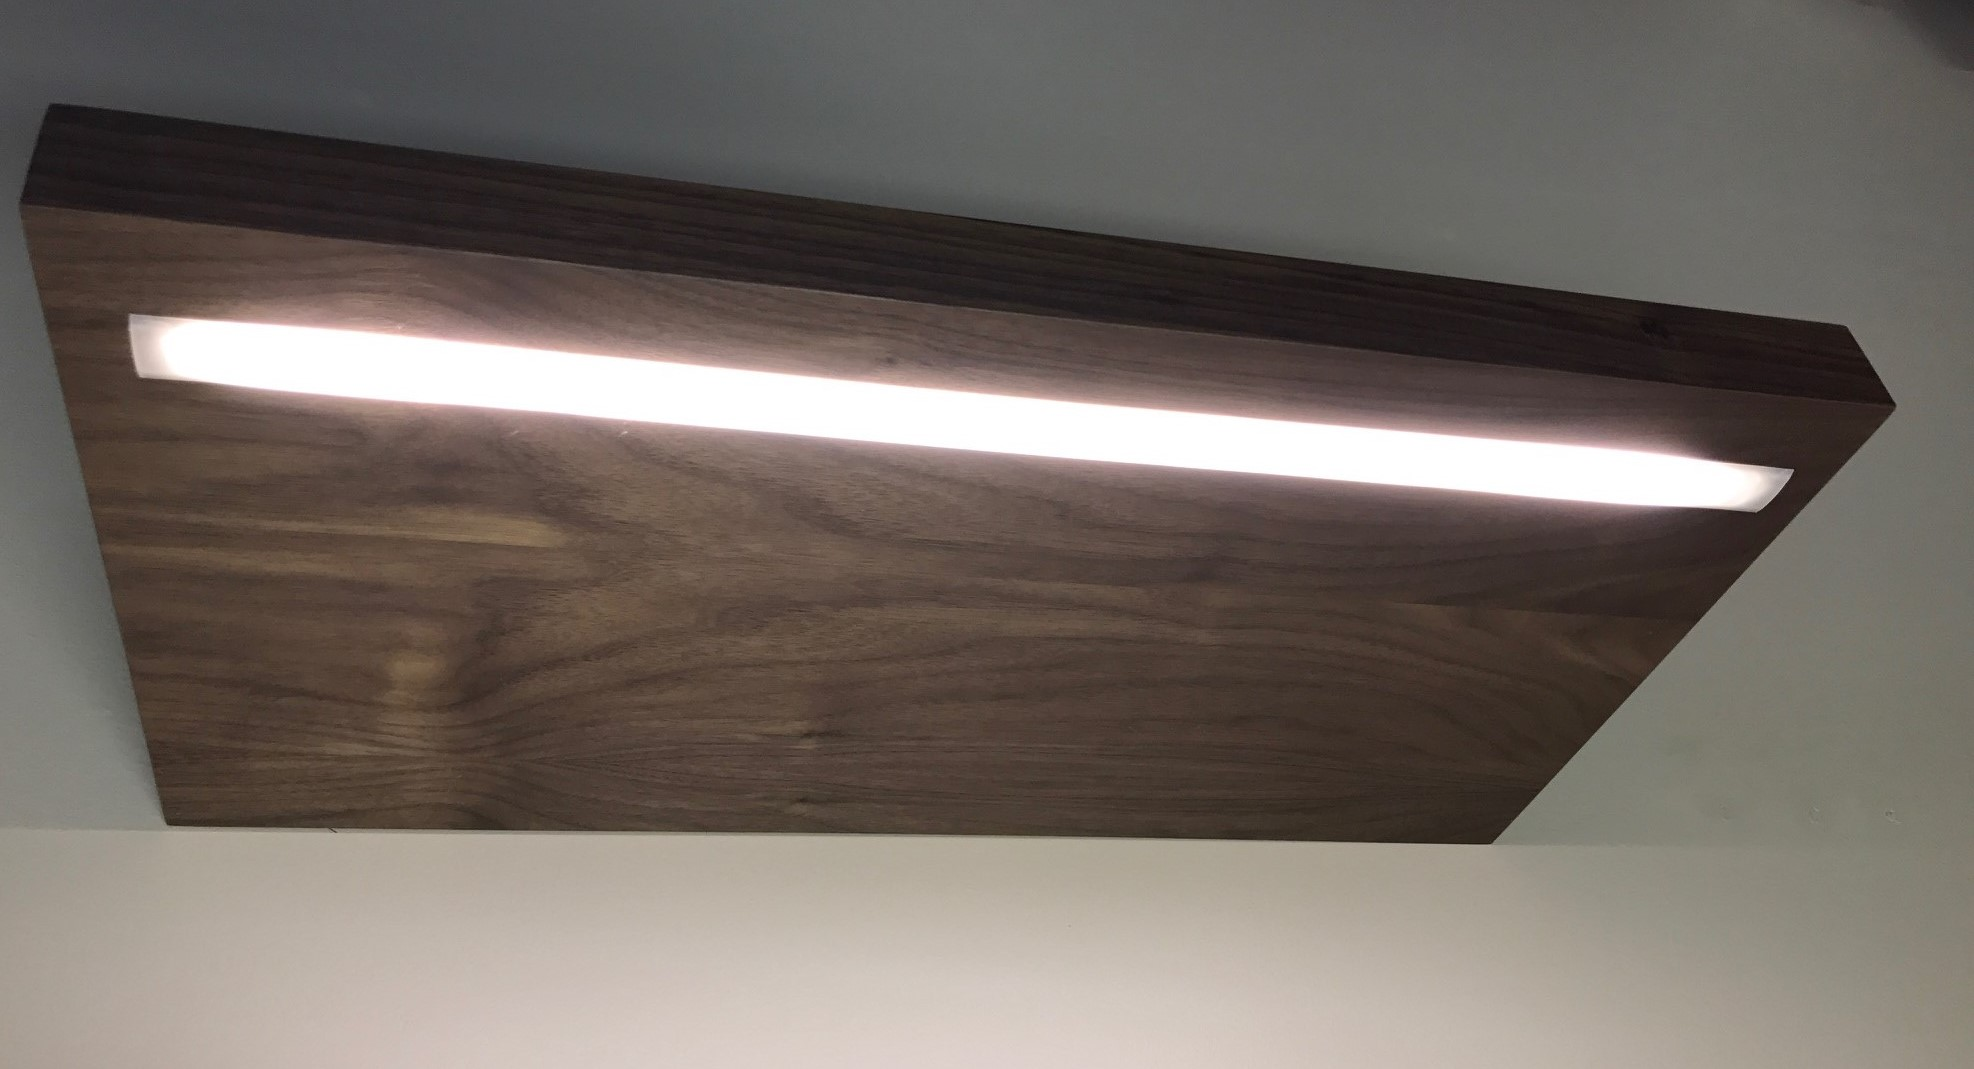 Regal Mit Beleuchtung Led Lighting Options For Custom Floating Shelves